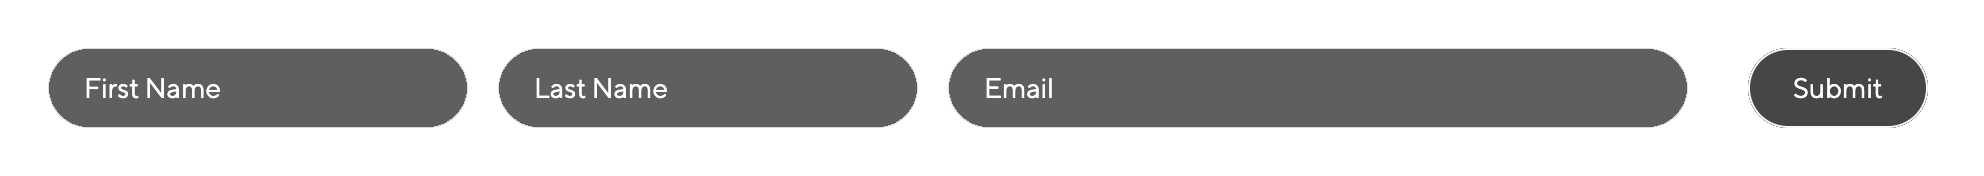 contact form fields